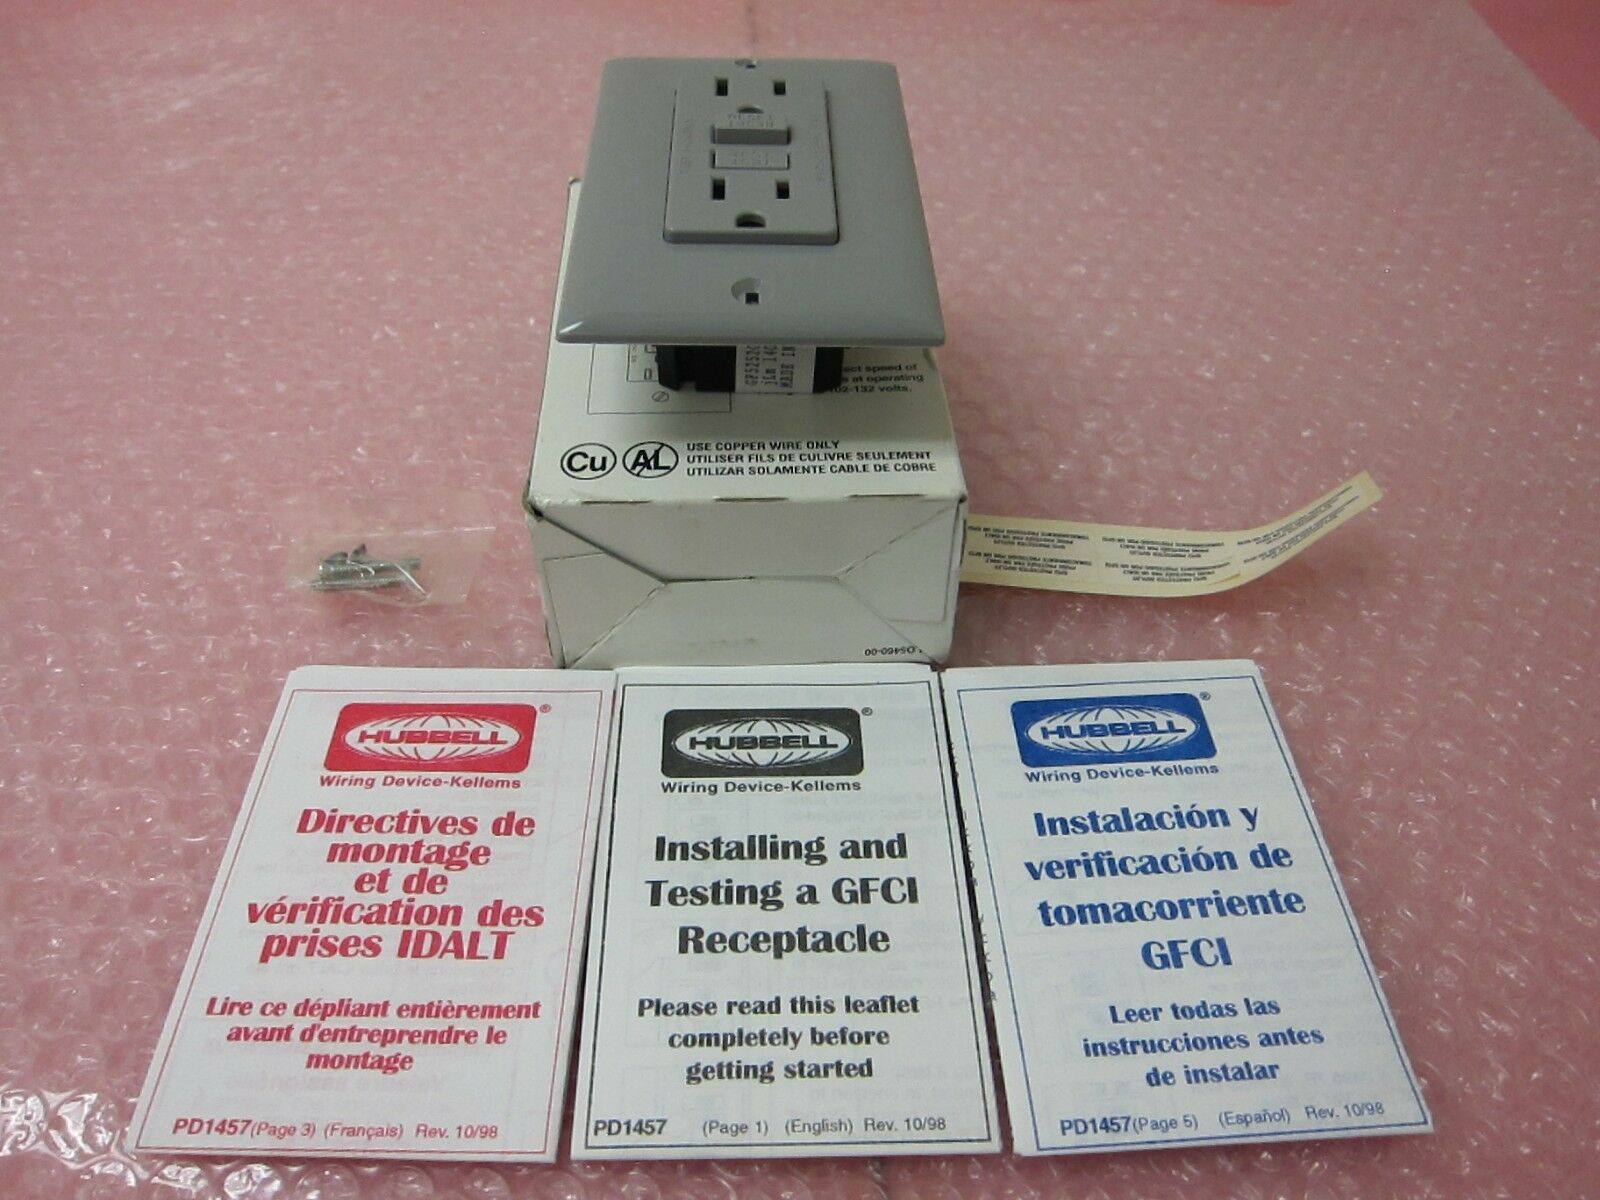 Hubbell Gf5252gy Gfci Ground Fault Circuit Interrupter Ebay How To Test Picture 1 Of 10